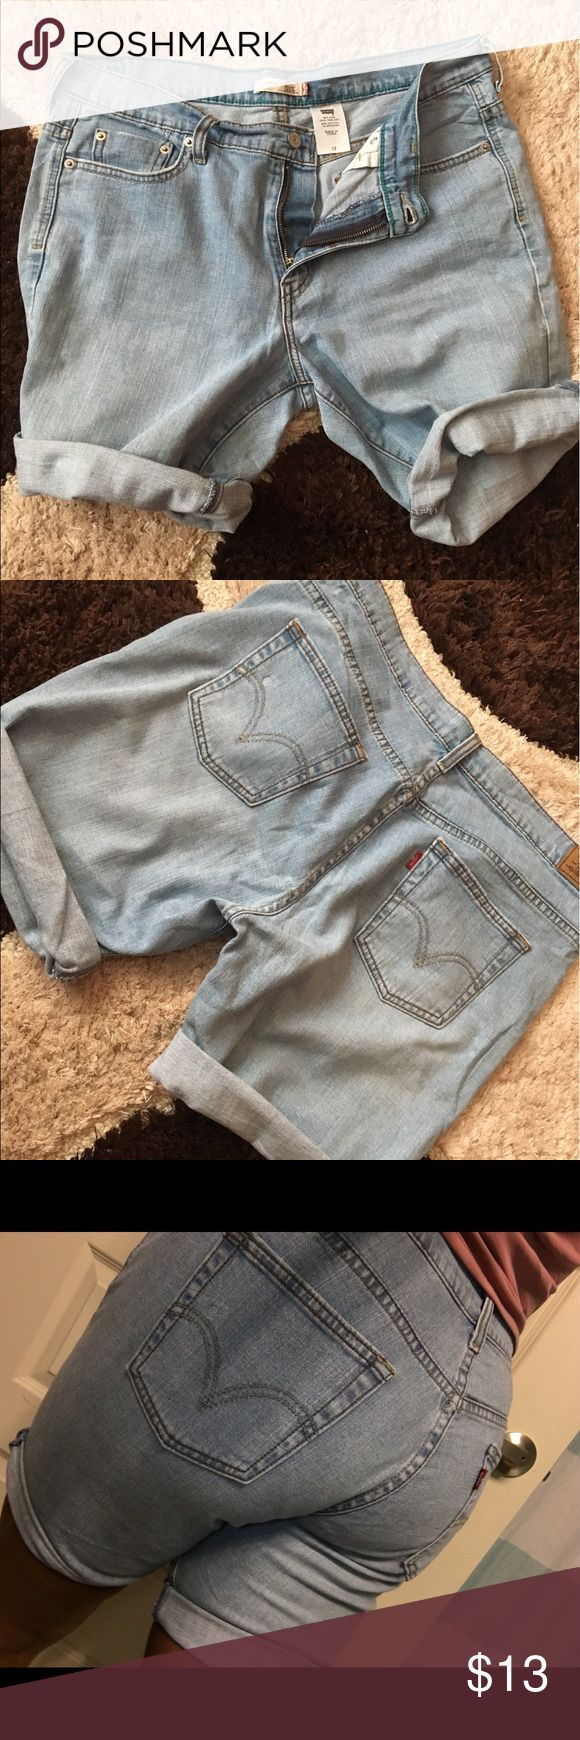 🌼 LEVI's 505 denim Shorts Levis 505 denim shorts comfortable, flatters your figure, good quality size 12 pant sleeve can be rolled up or left down Levi's Jeans